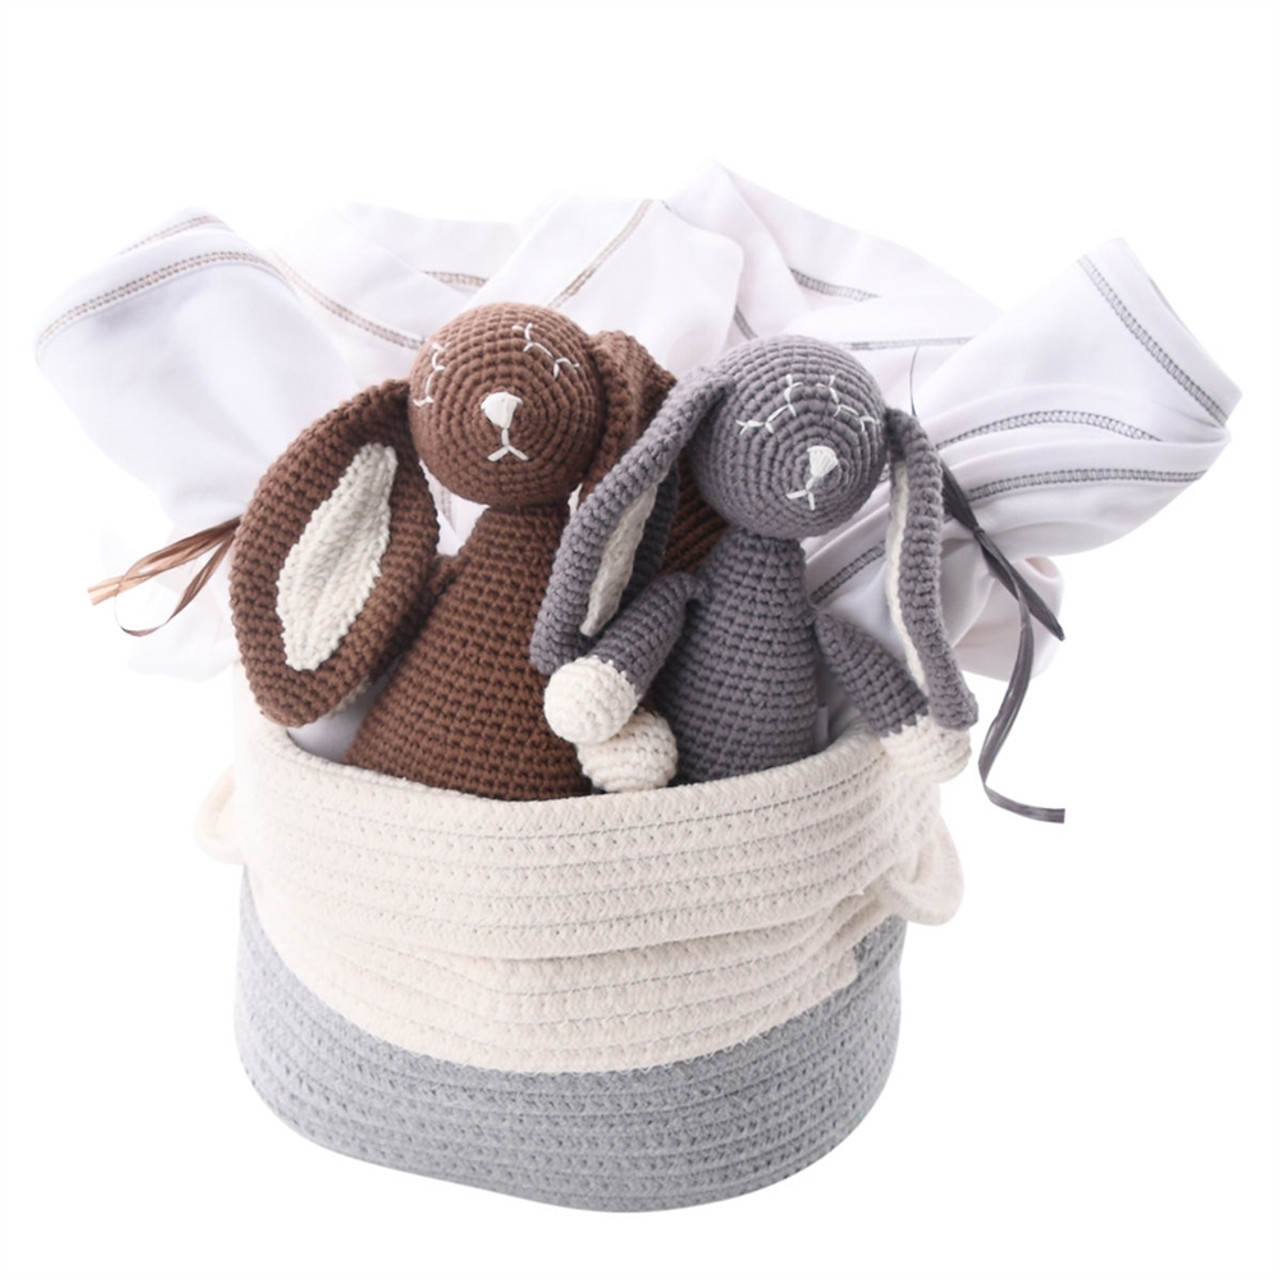 Organic Gifts for Twins - Unisex